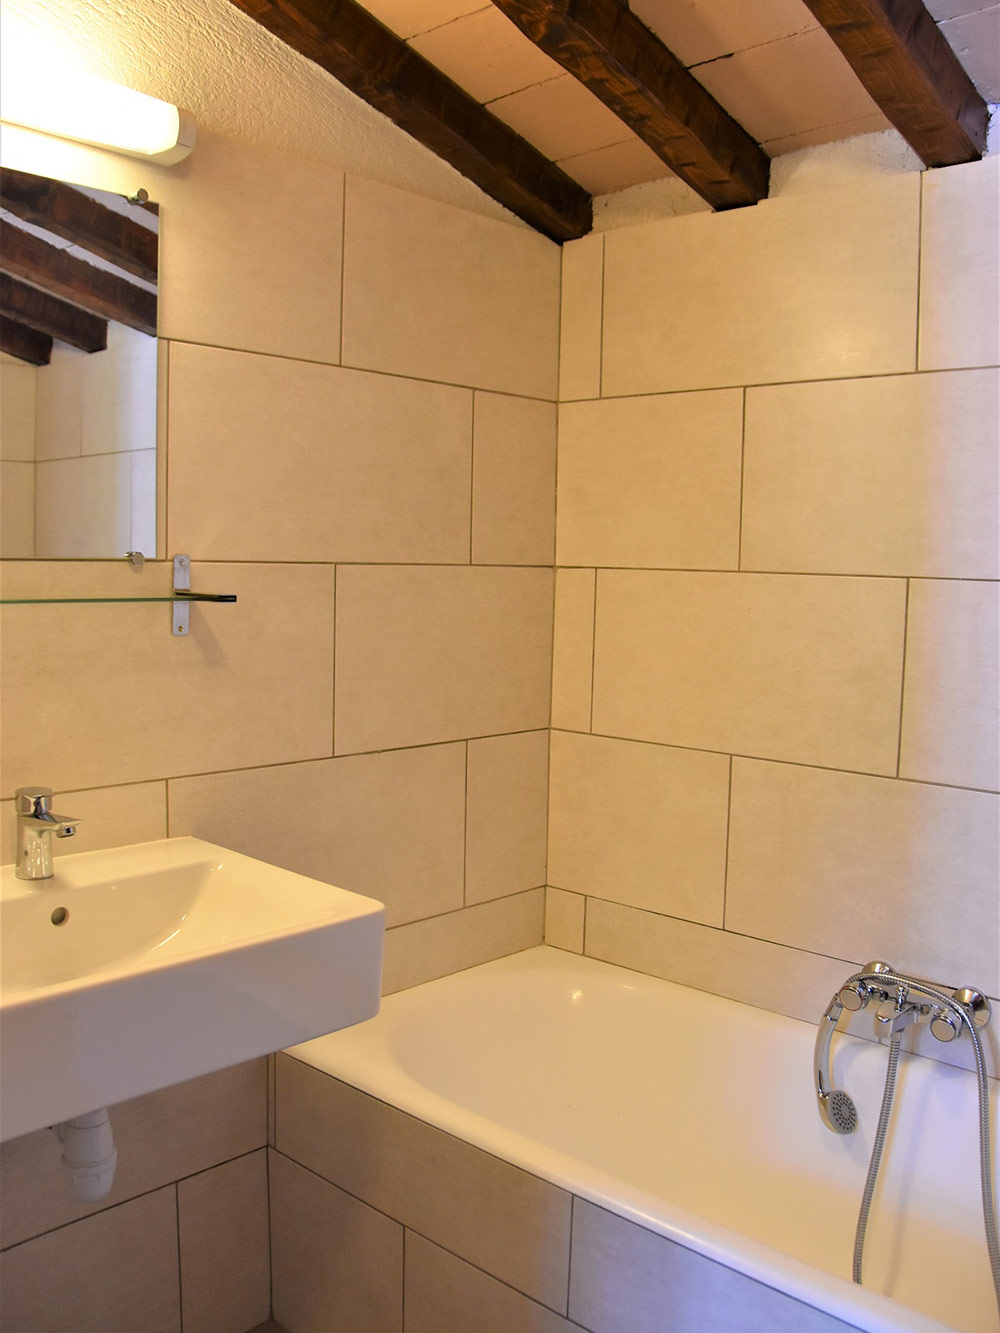 Studio d'Augias 1: bathroom